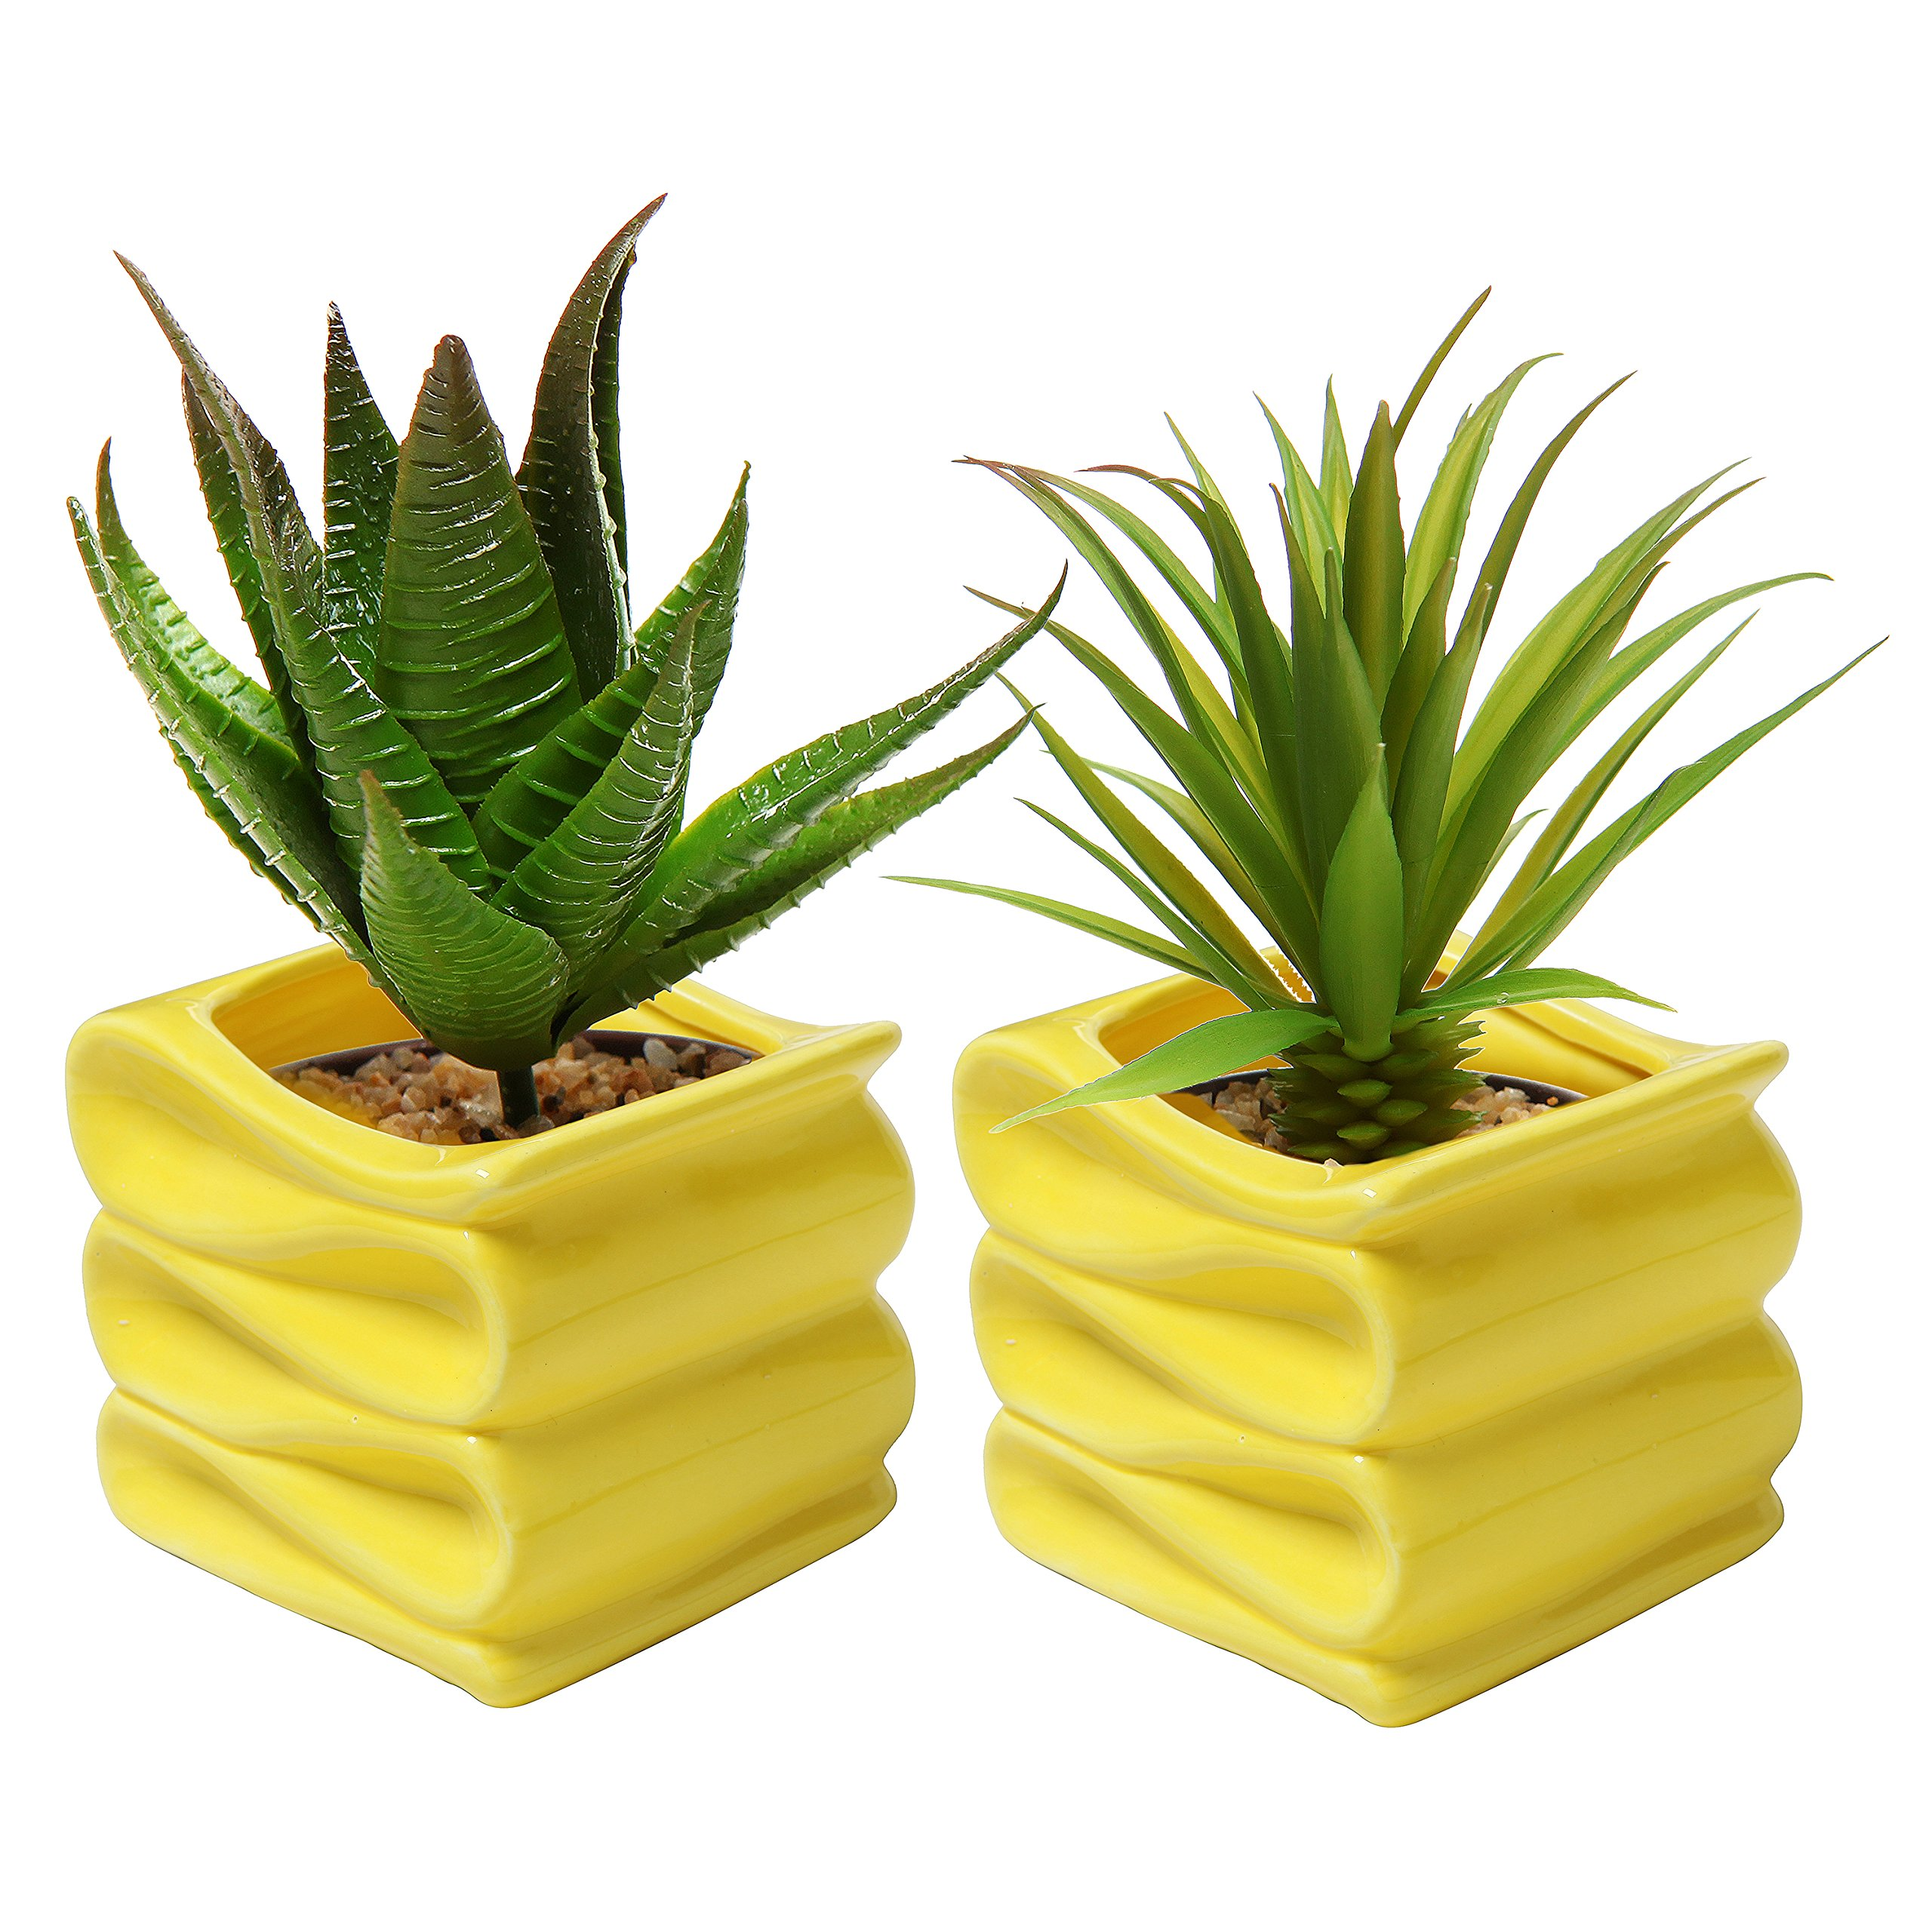 MyGift Set of 2 Modern Decorative Folded Design Small Ceramic Plant Pot / Flower Planter - Yellow by MyGift